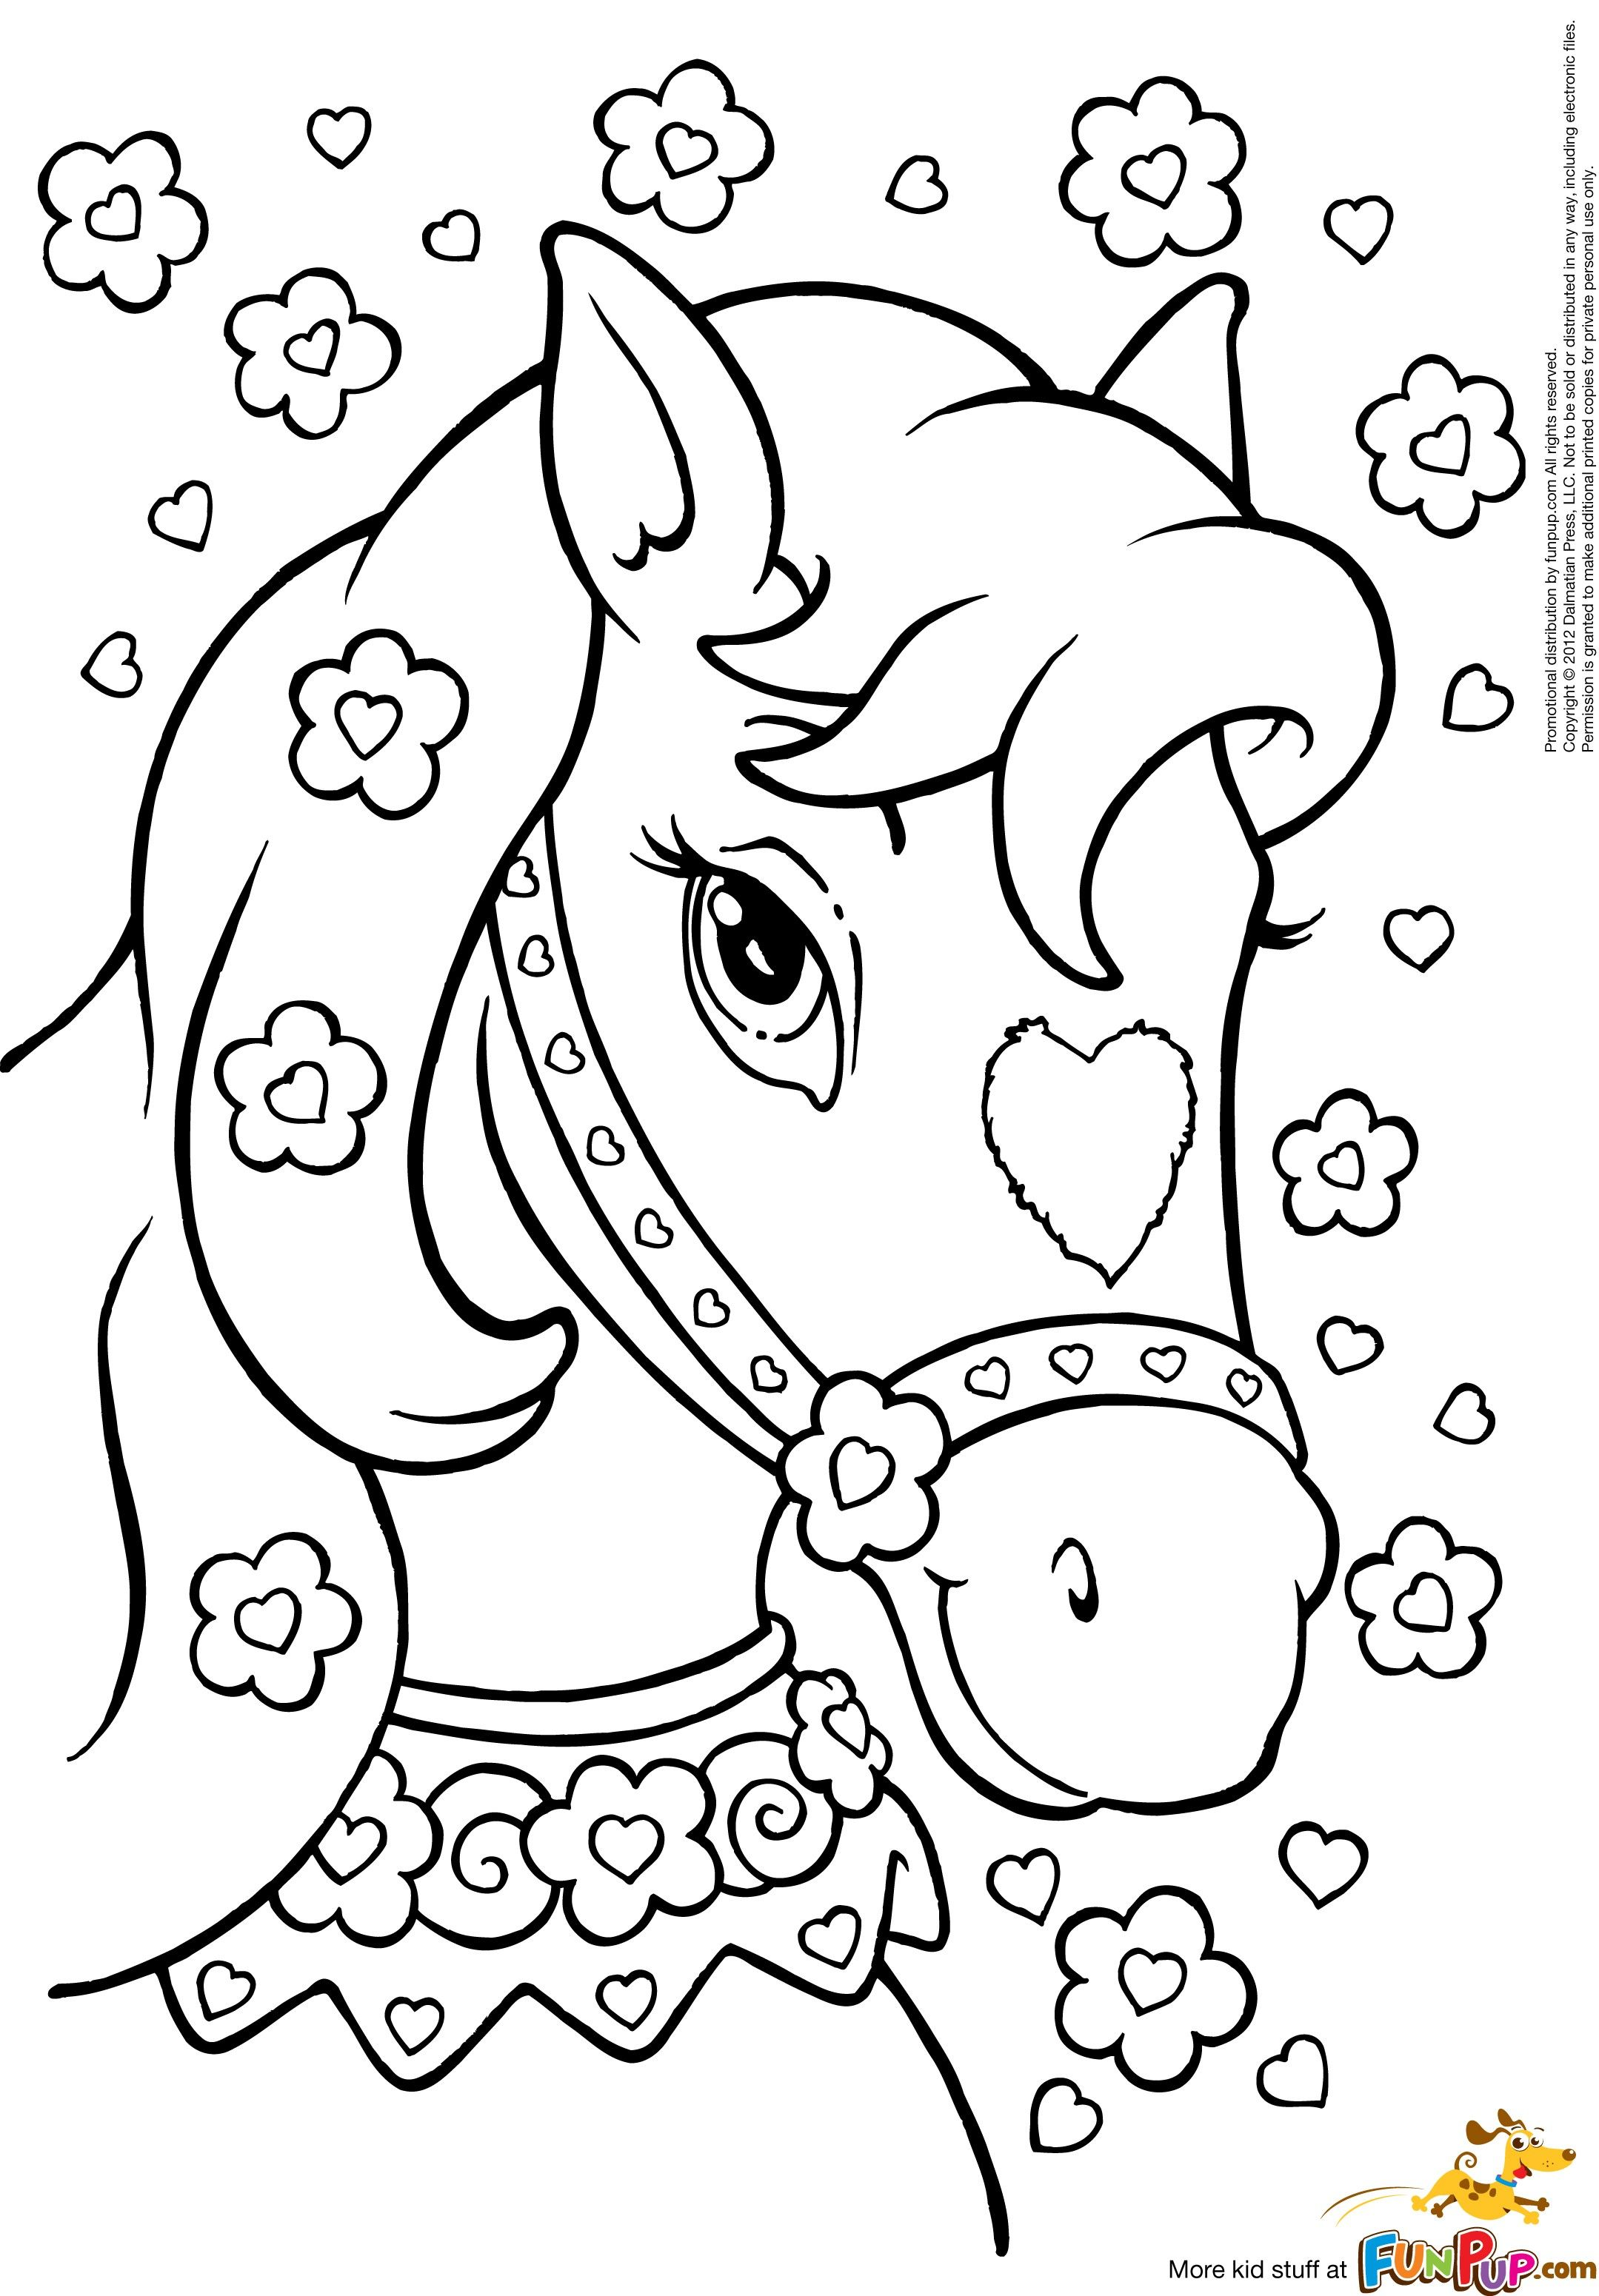 Interactive princess coloring pages